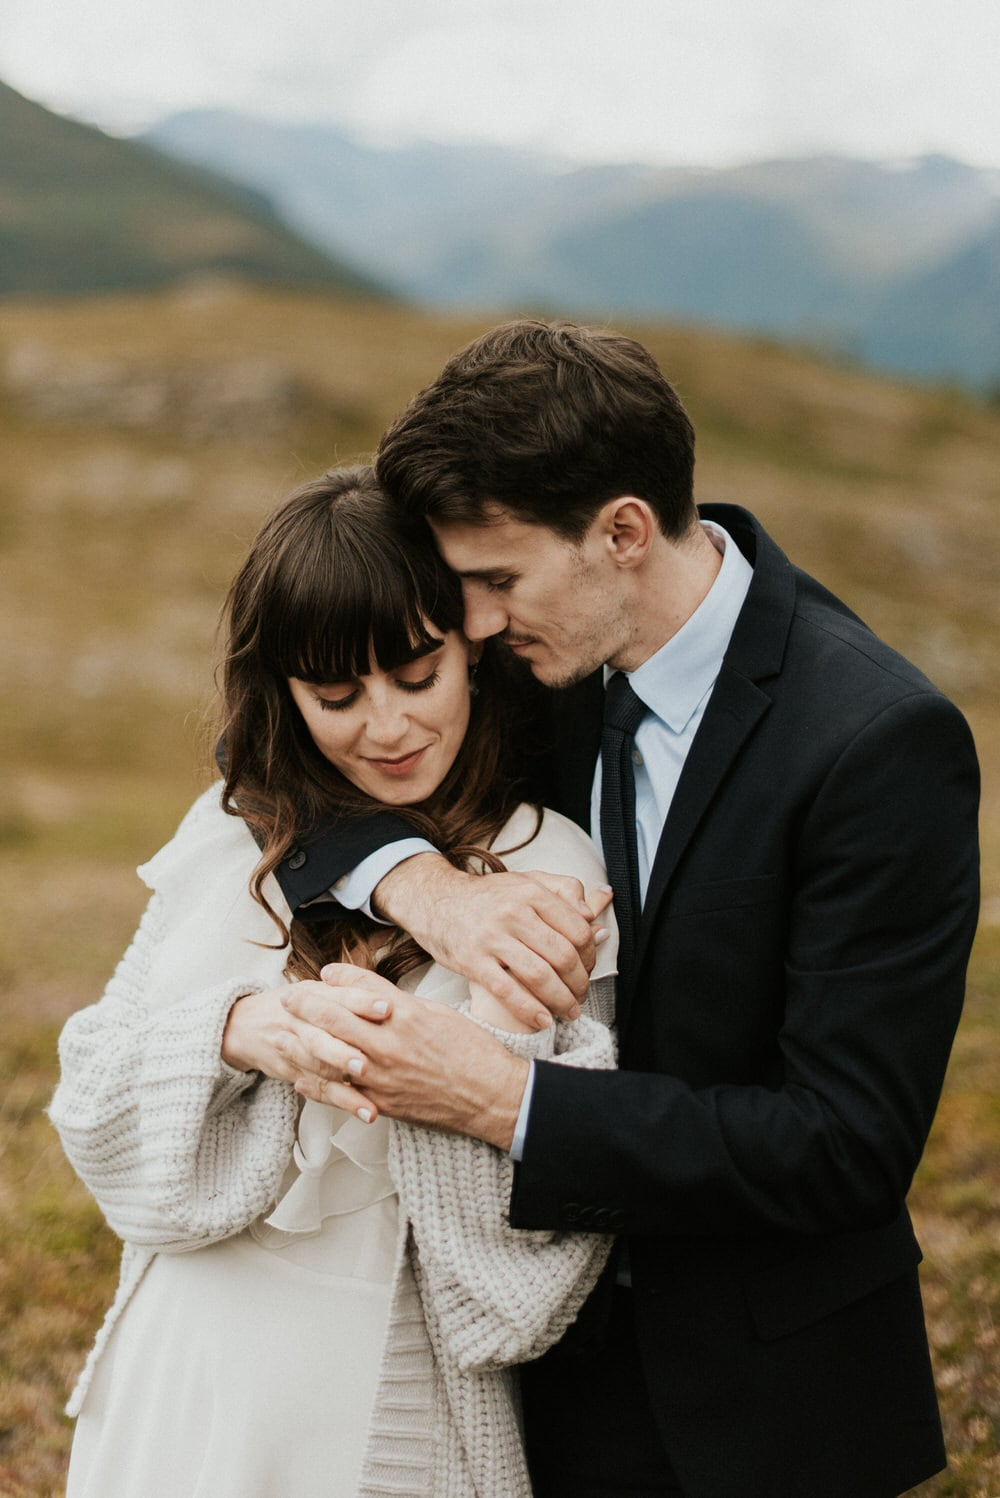 outdoor elopement in Norway fjords